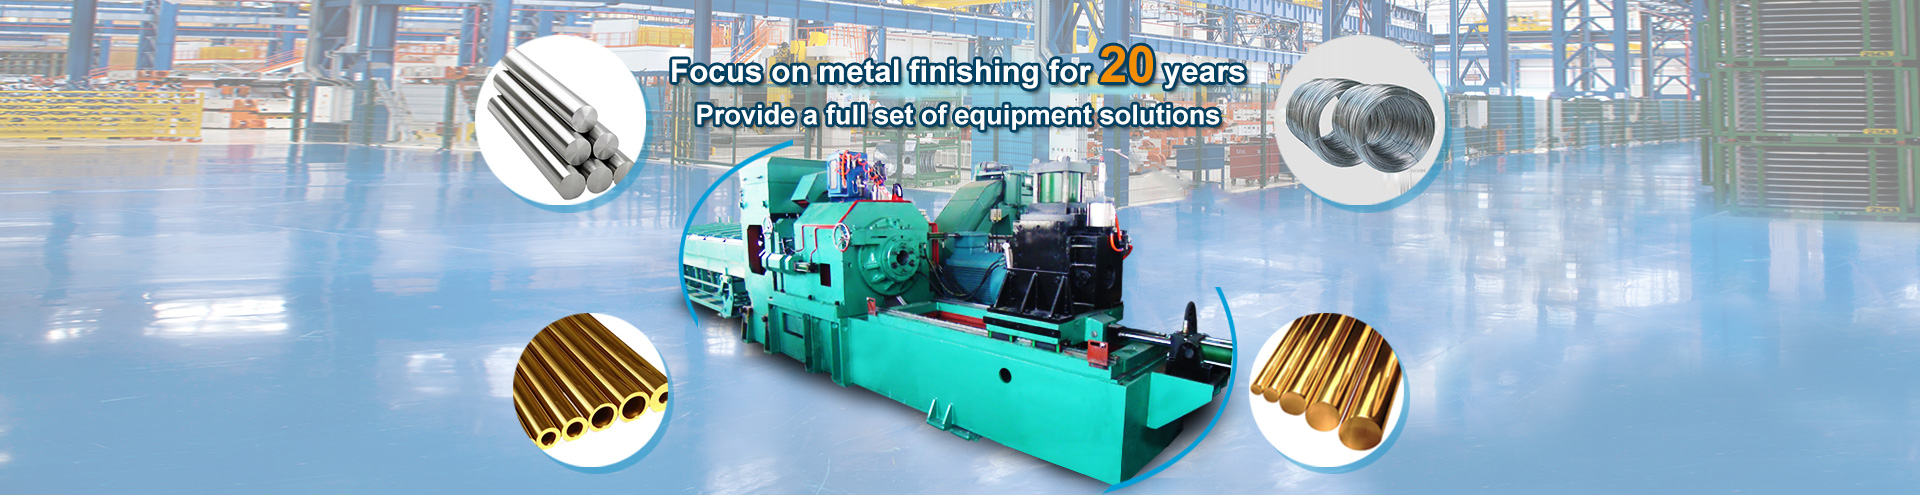 Focus on metal finishing for 20 years,Provide a full set of equipment solutions.